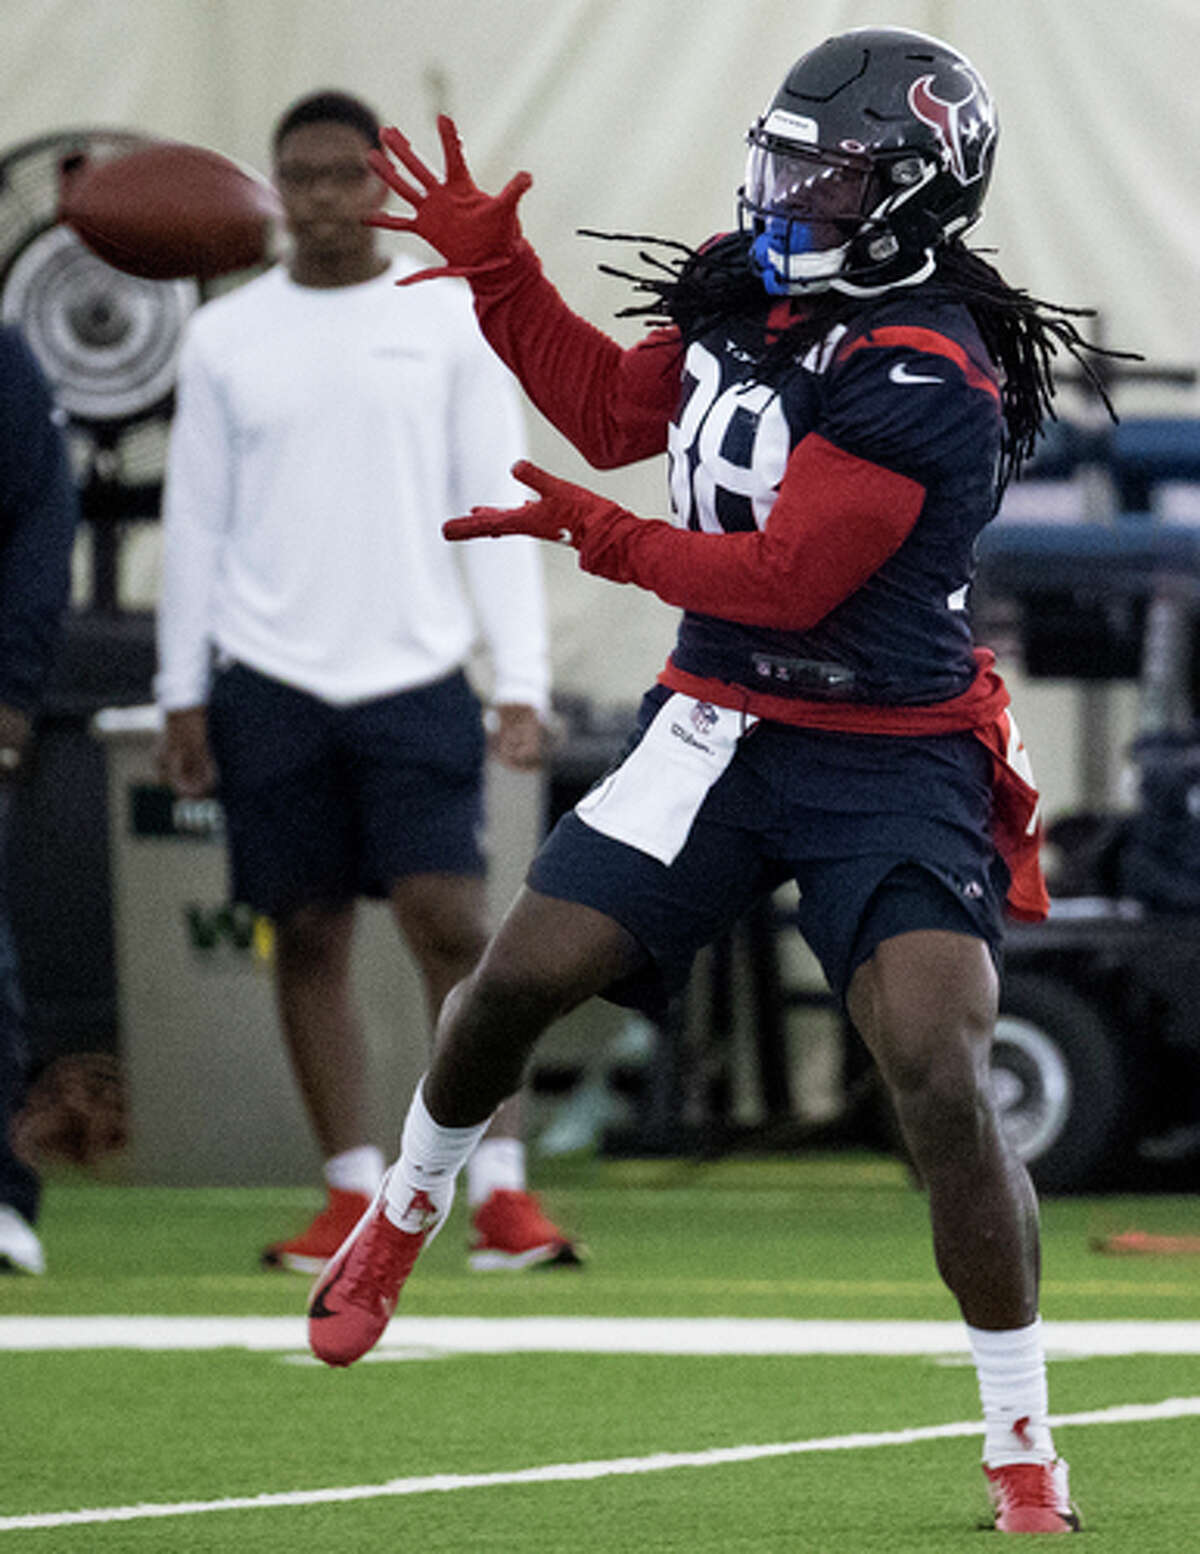 Houston Texans running back Buddy Howell reaches back to make a catch during training camp at the Methodist Training Center on Thursday, Aug. 22, 2019, in Houston.